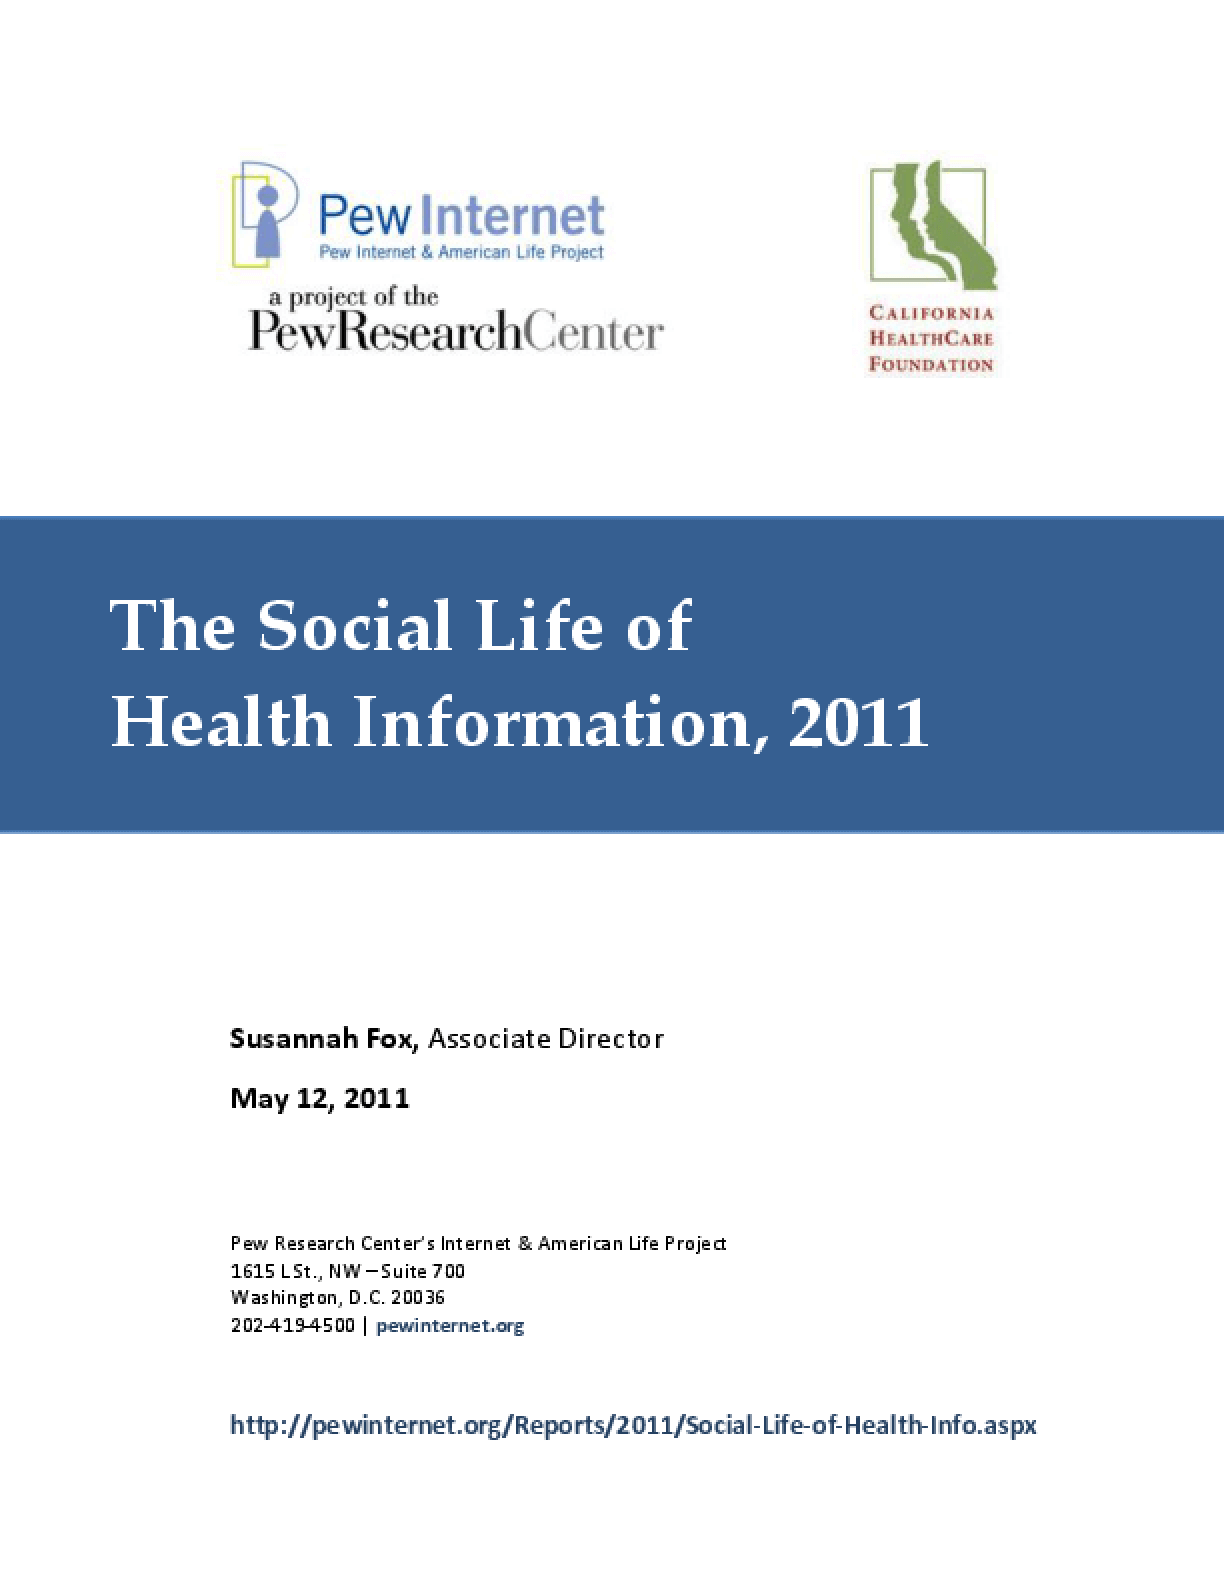 The Social Life of Health Information, 2011